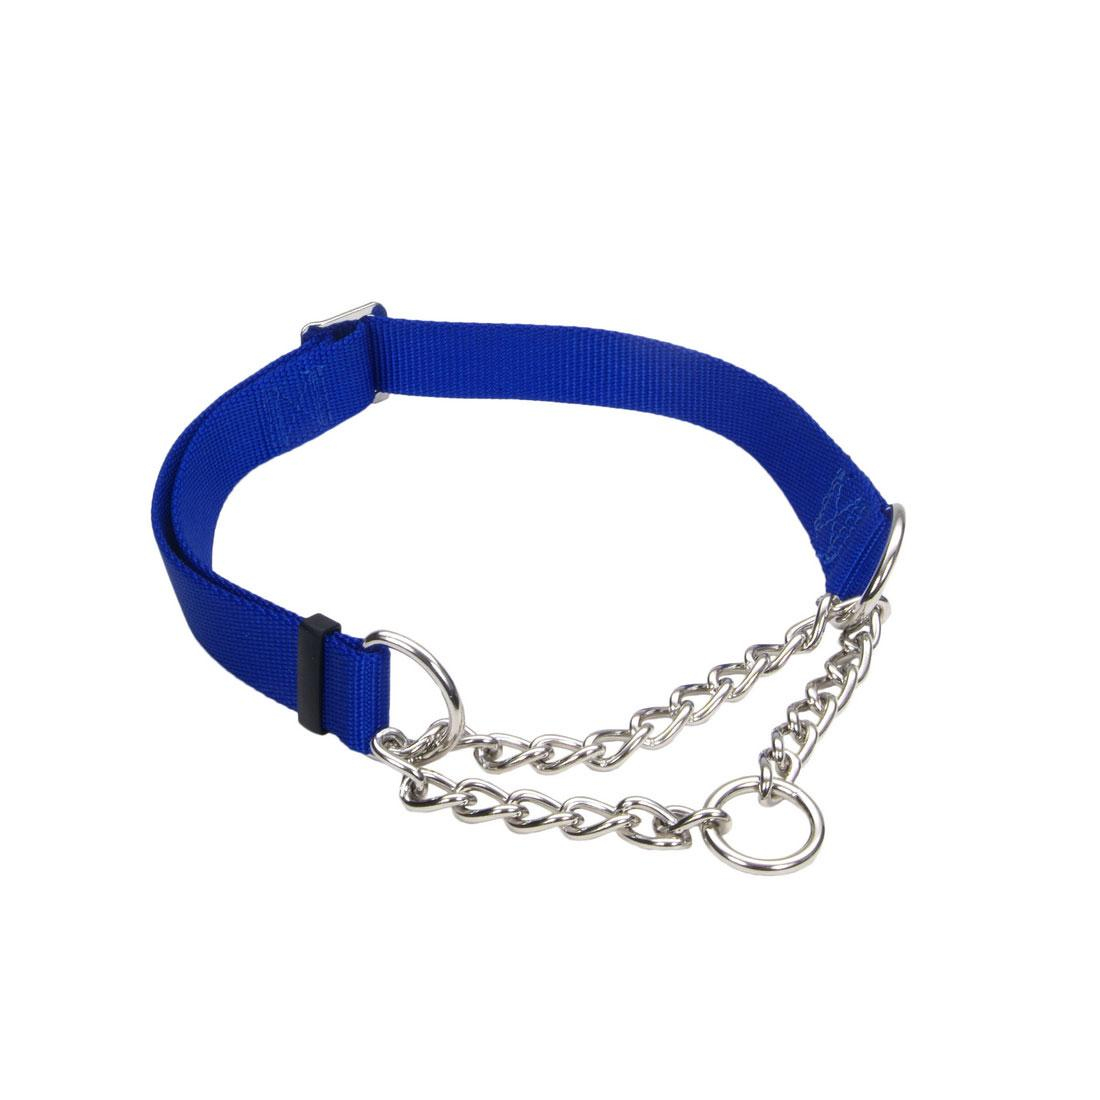 Coastal Adjustable Check Training Collar for Dogs, Blue Image